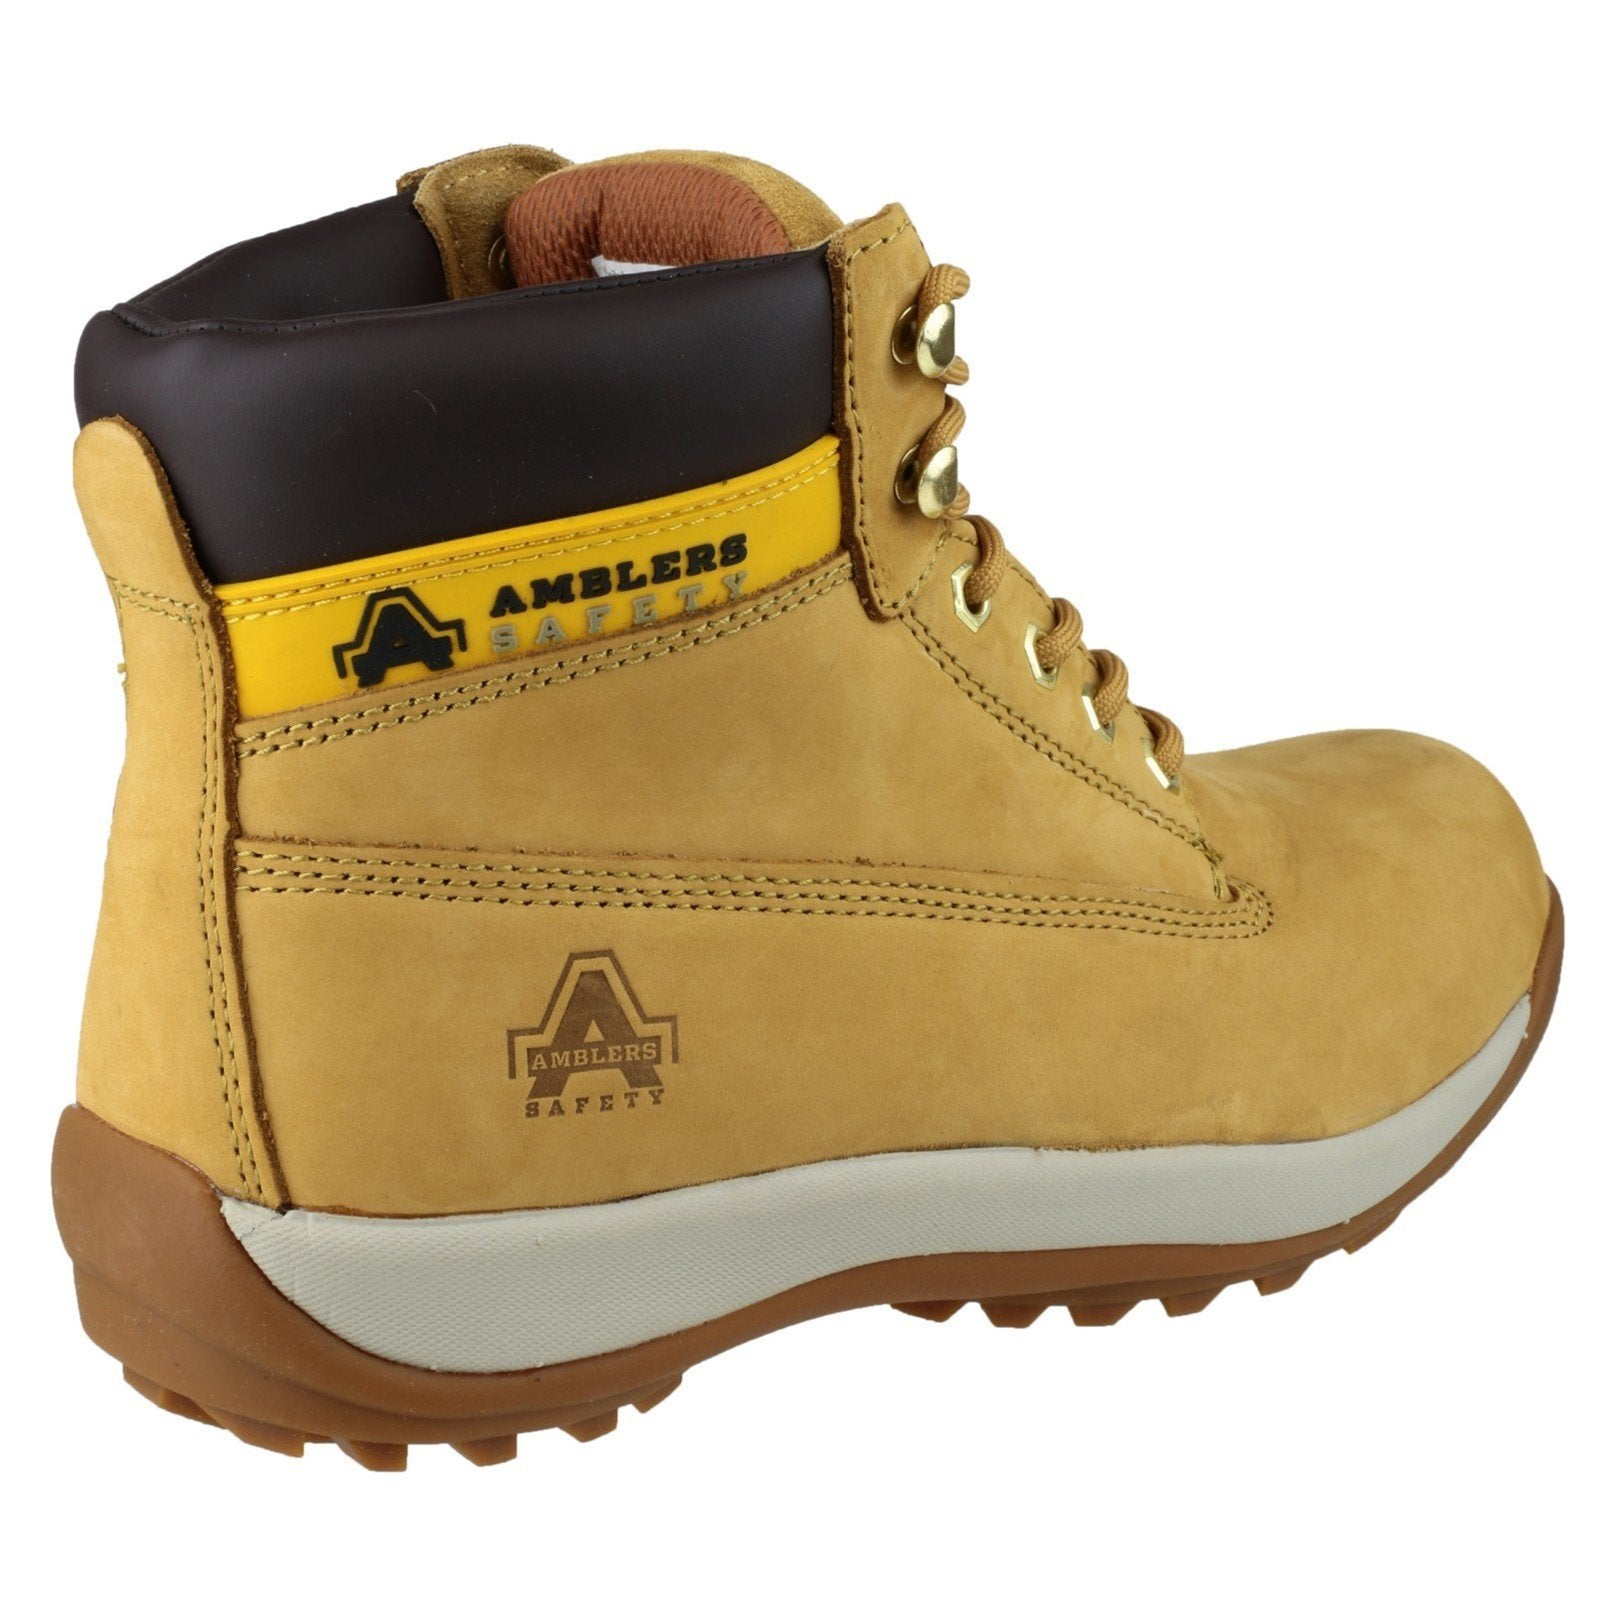 Amblers Safety Unisex Lace Up Safety Boots